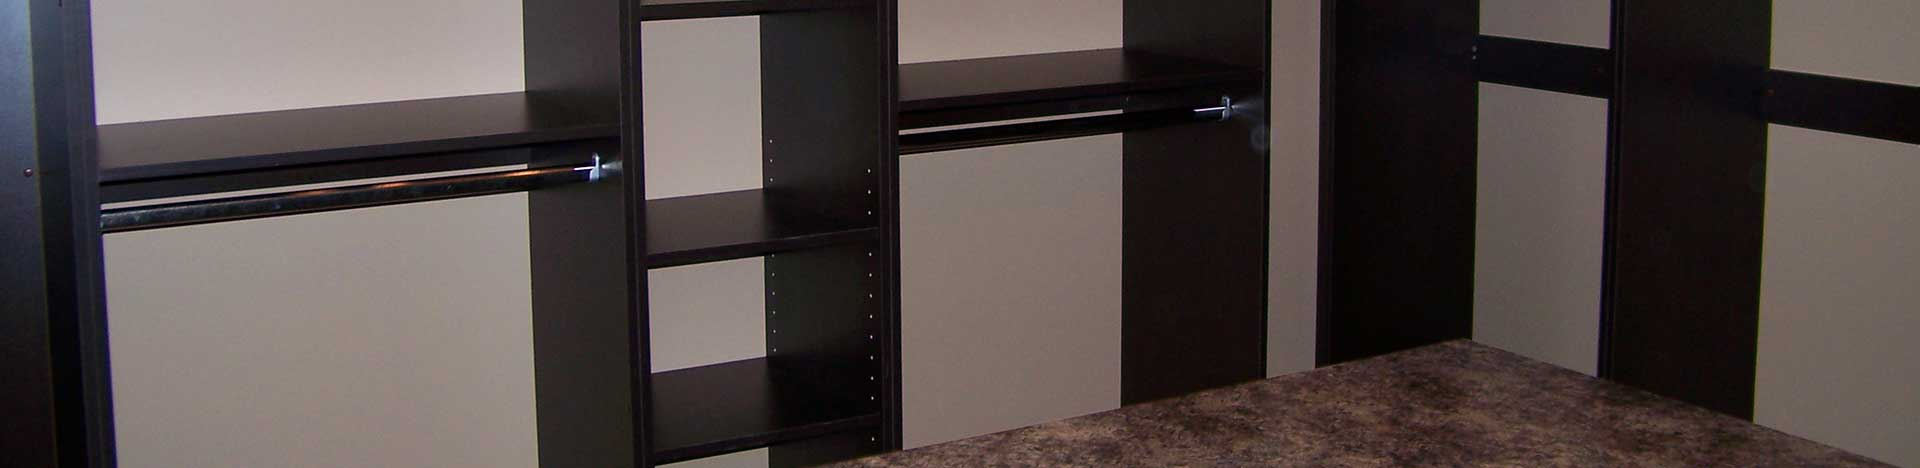 Dark Wood Closet Shelving